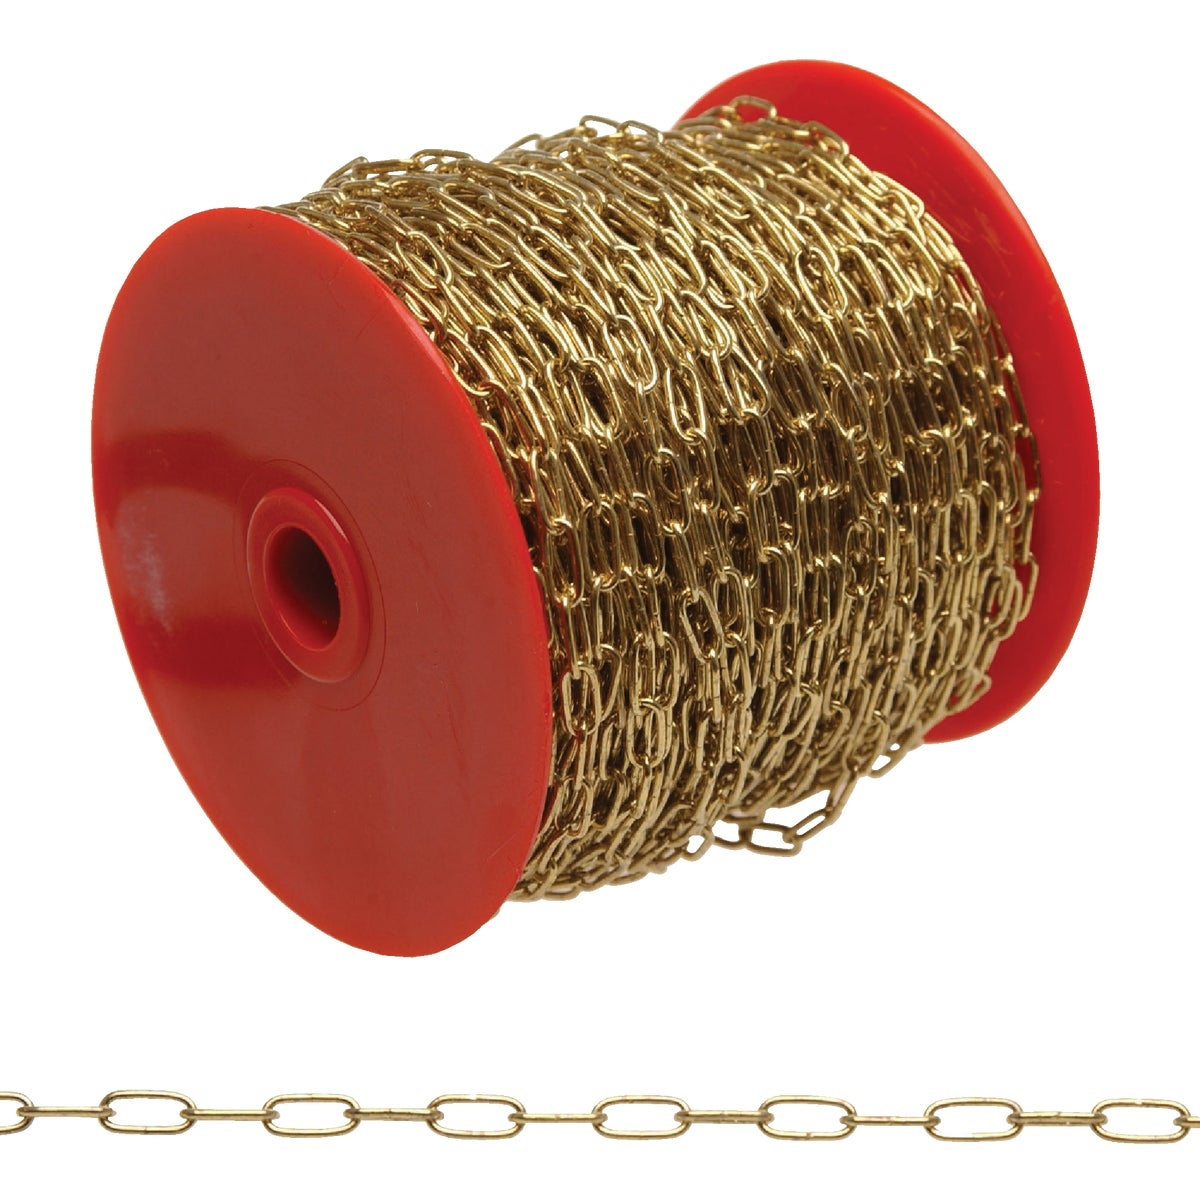 82' #5 BRASS CLOCK CHAIN - 0710517 by Cooper Campbell Apex